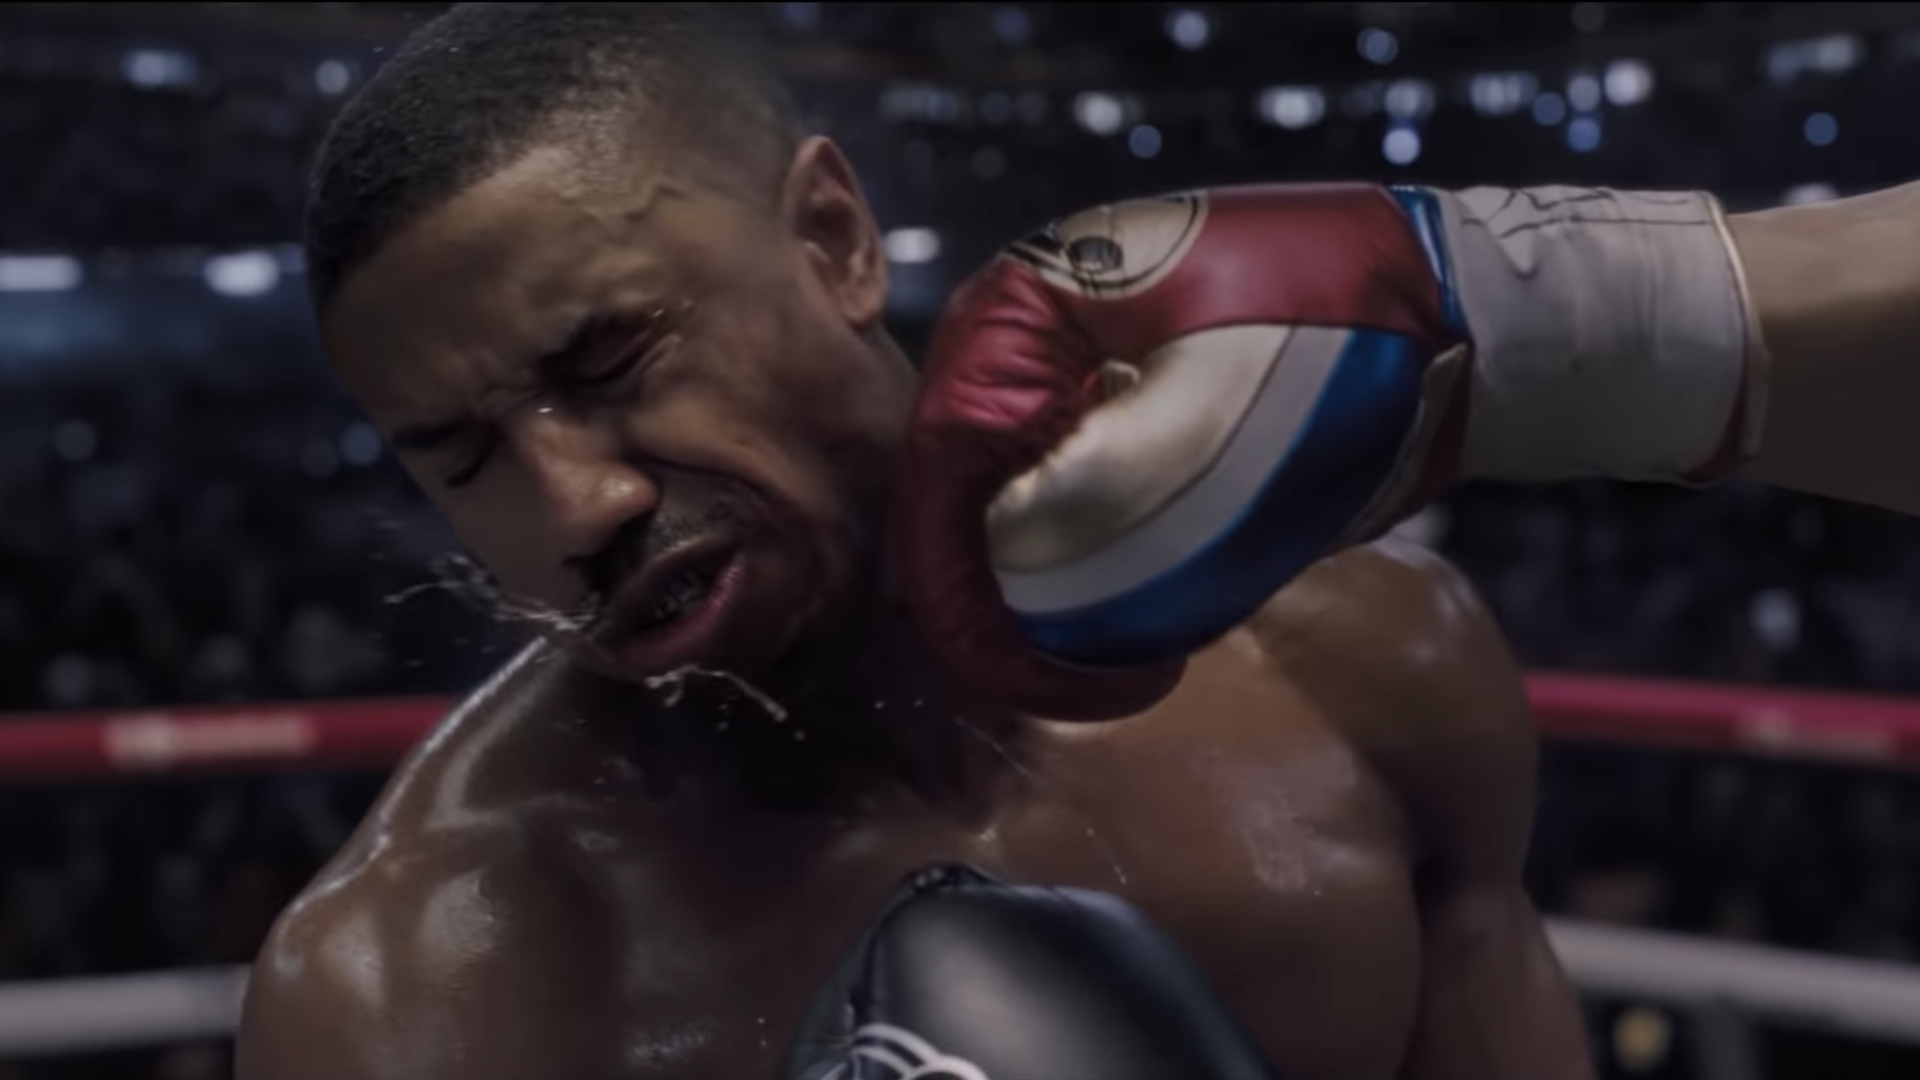 The Thumping First 'Creed 2' Trailer Sees Adonis Creed Trying To Avenge His Father